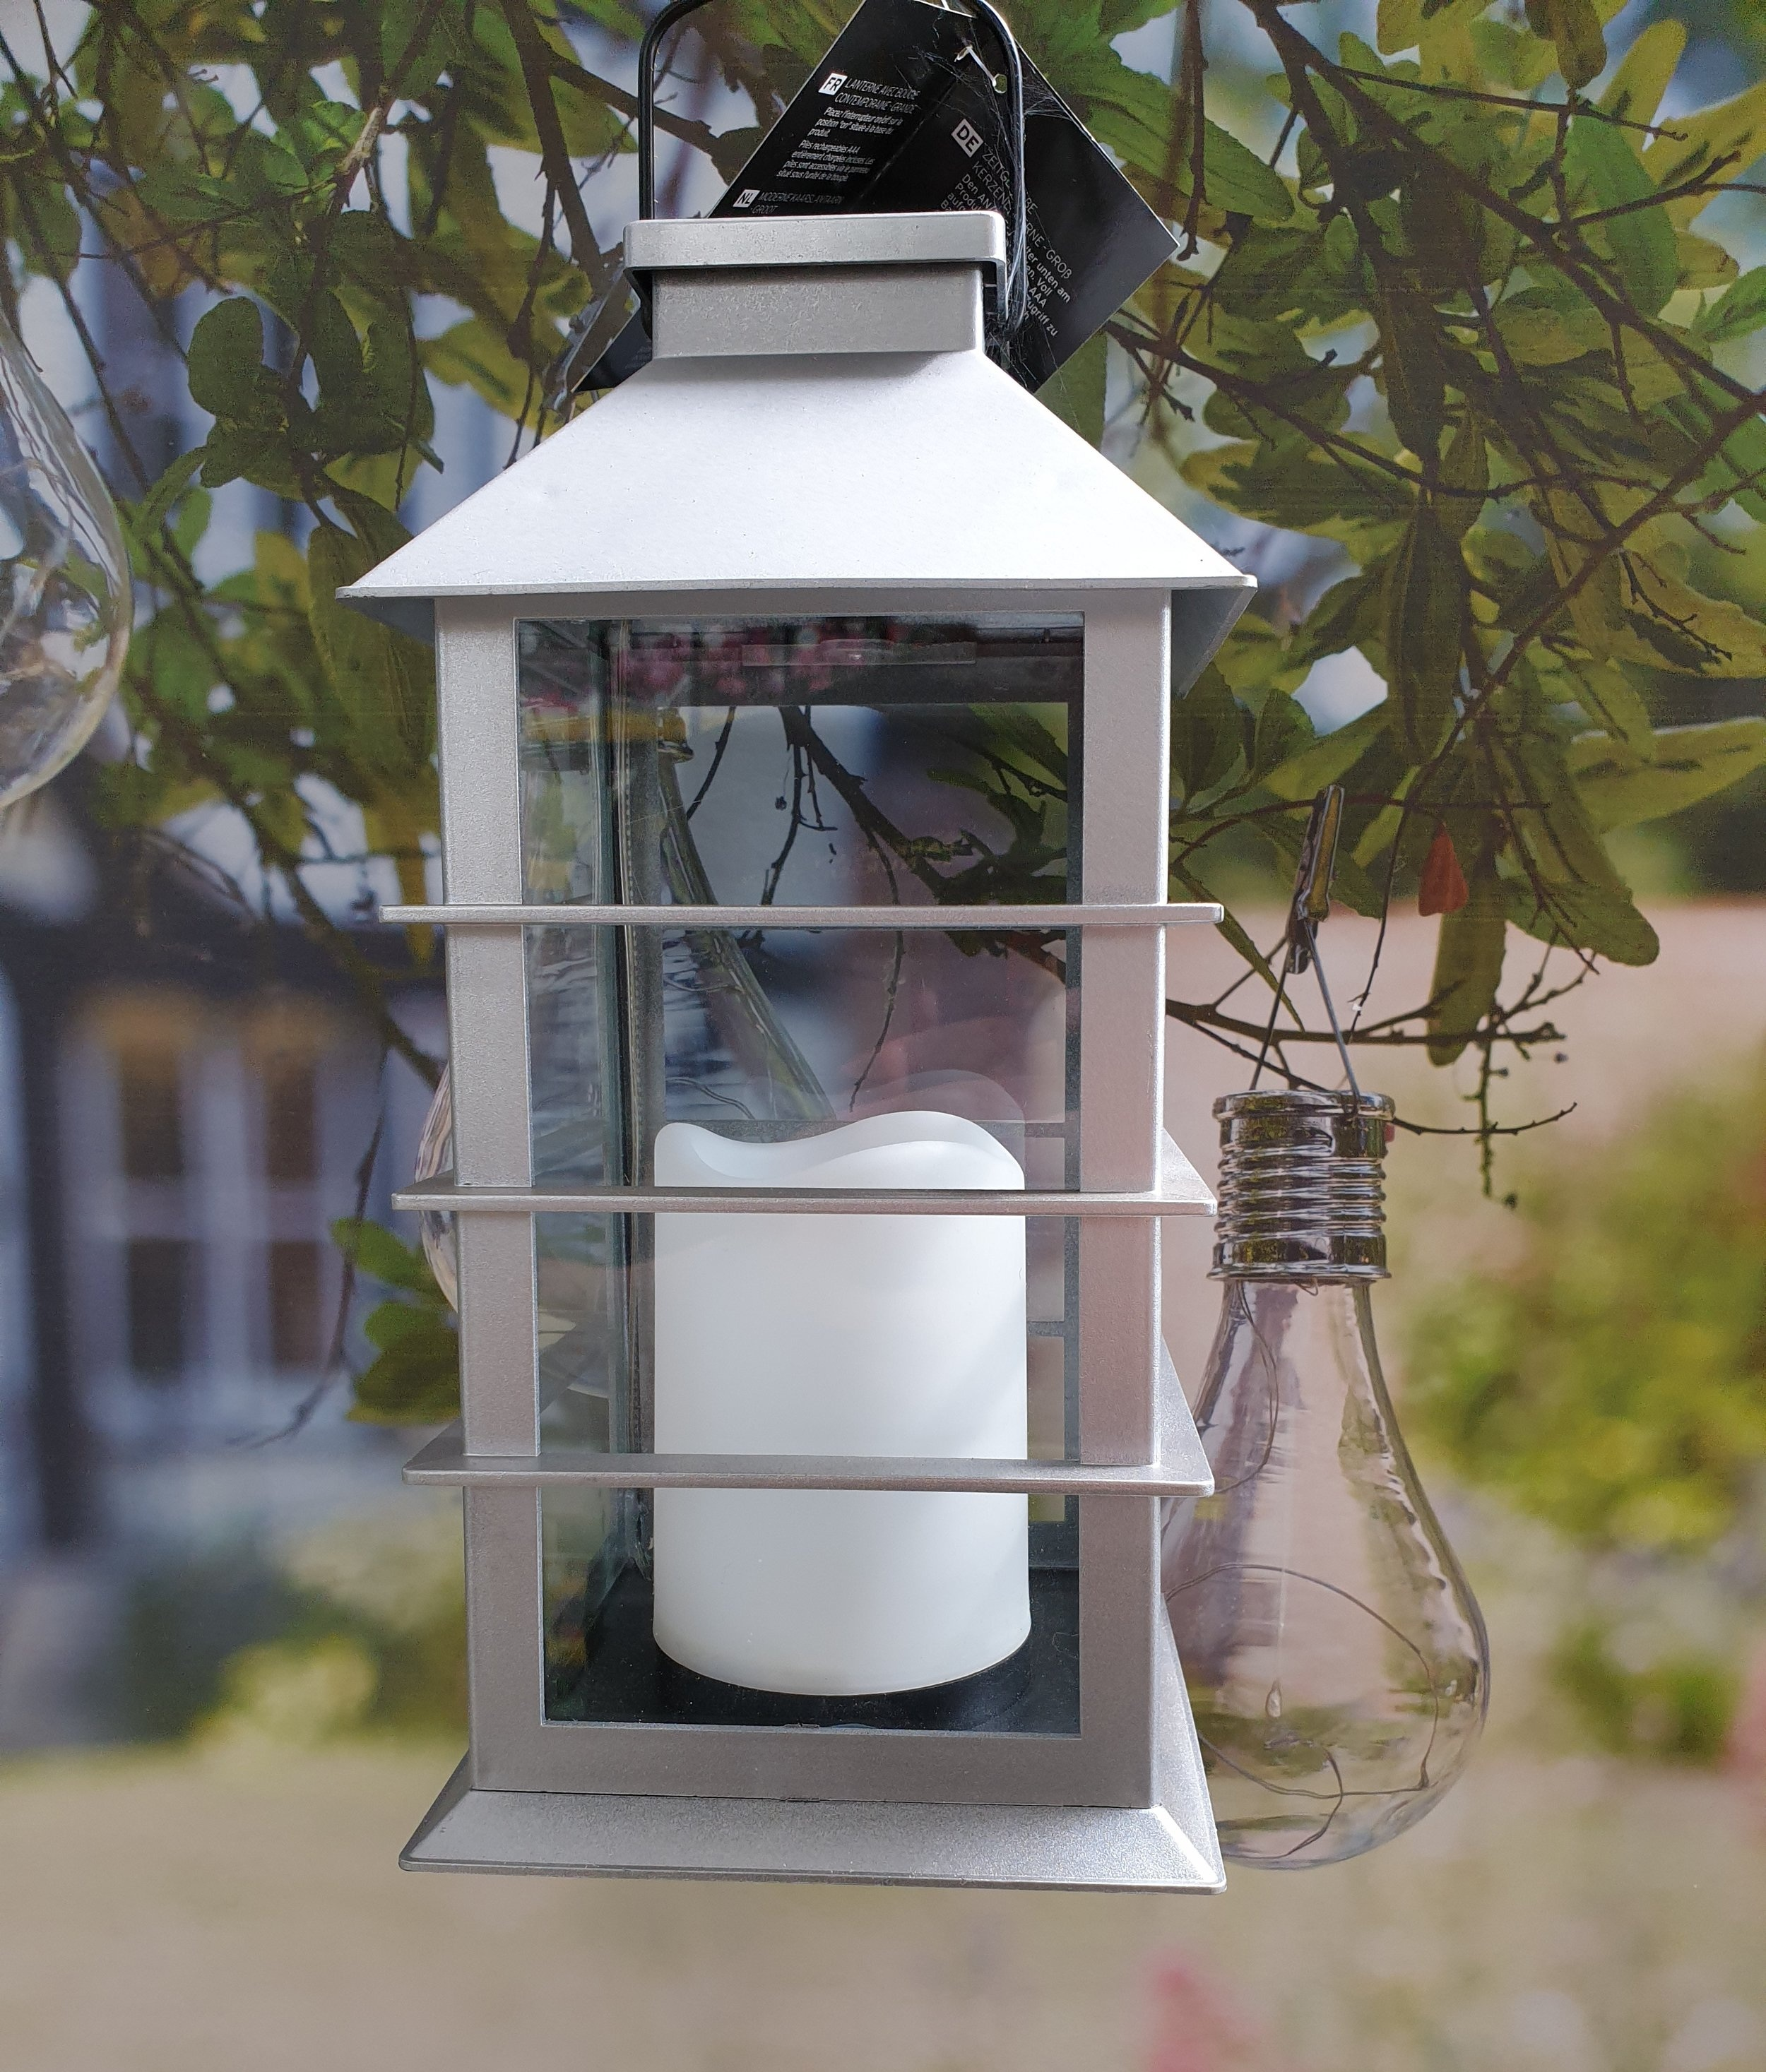 Hanging and Standing Lights. - We have a range of decorative lights in the form of hanging bulbs, lanterns and bugs, as imaged. We also have a range of light strings including bulbs and led strings.